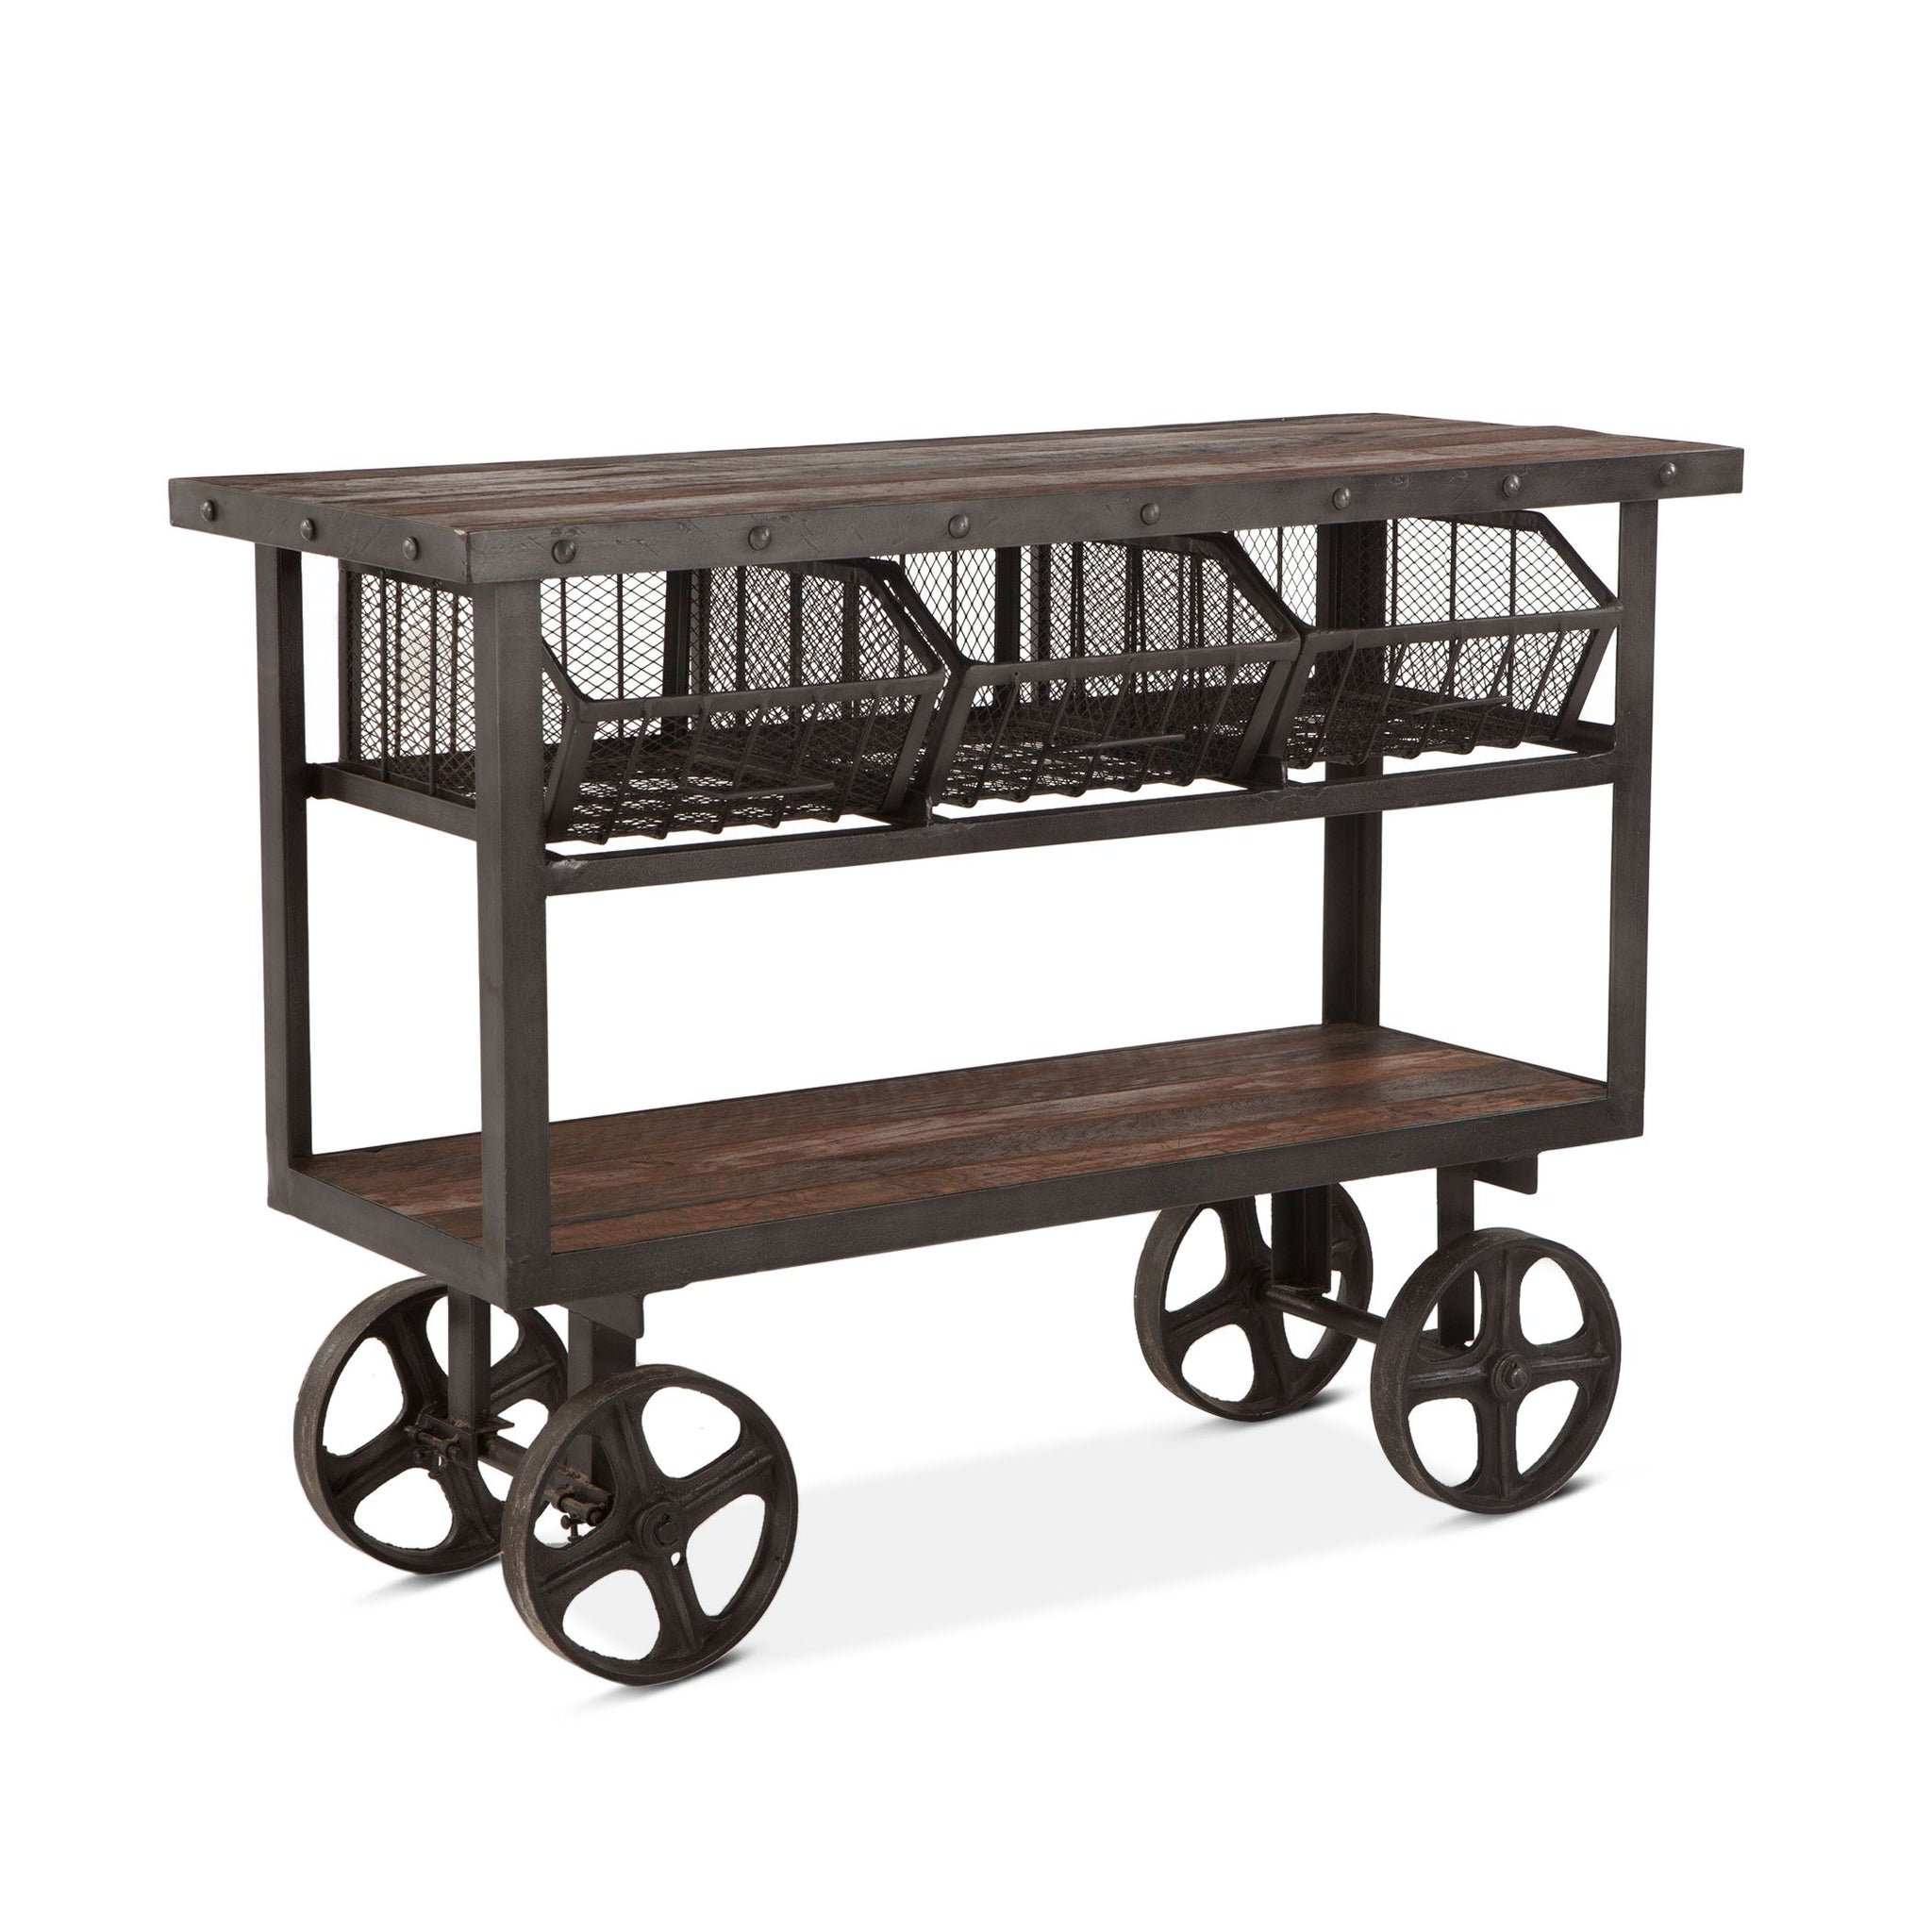 Reclaimed Industrial Console Sofa Table Kitchen Cart - Furniture on Main